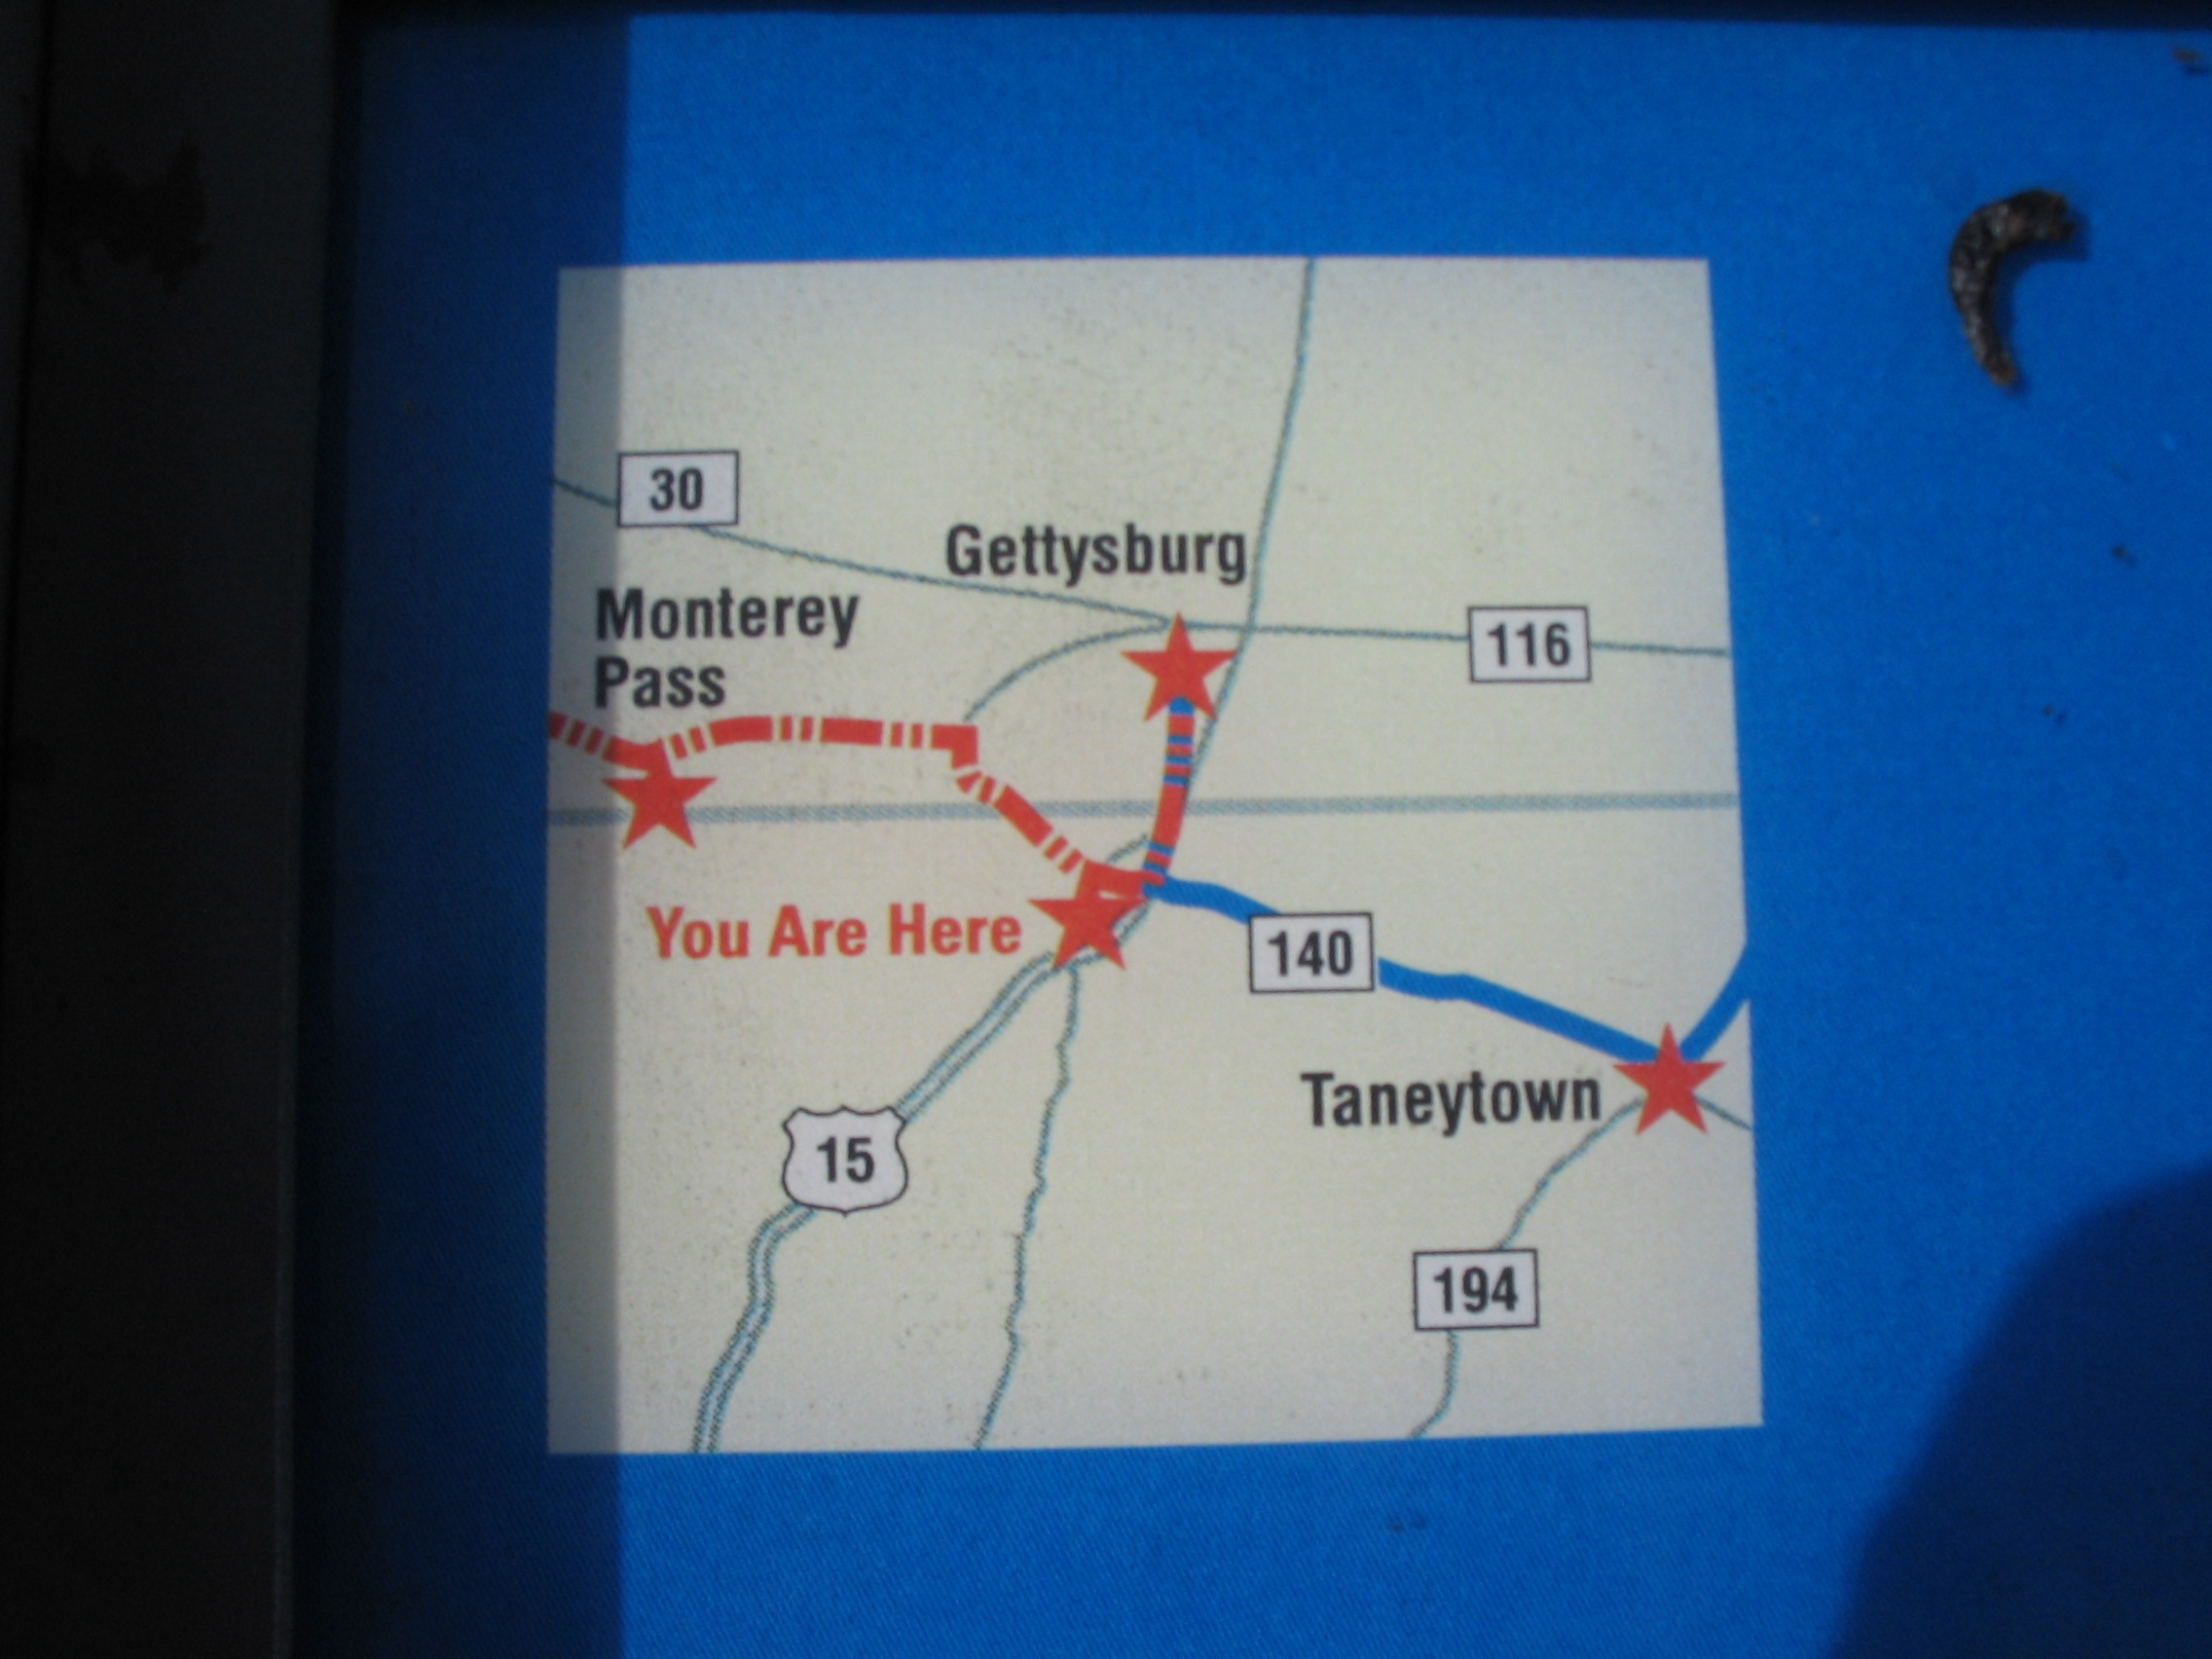 Map in the Header of the Marker